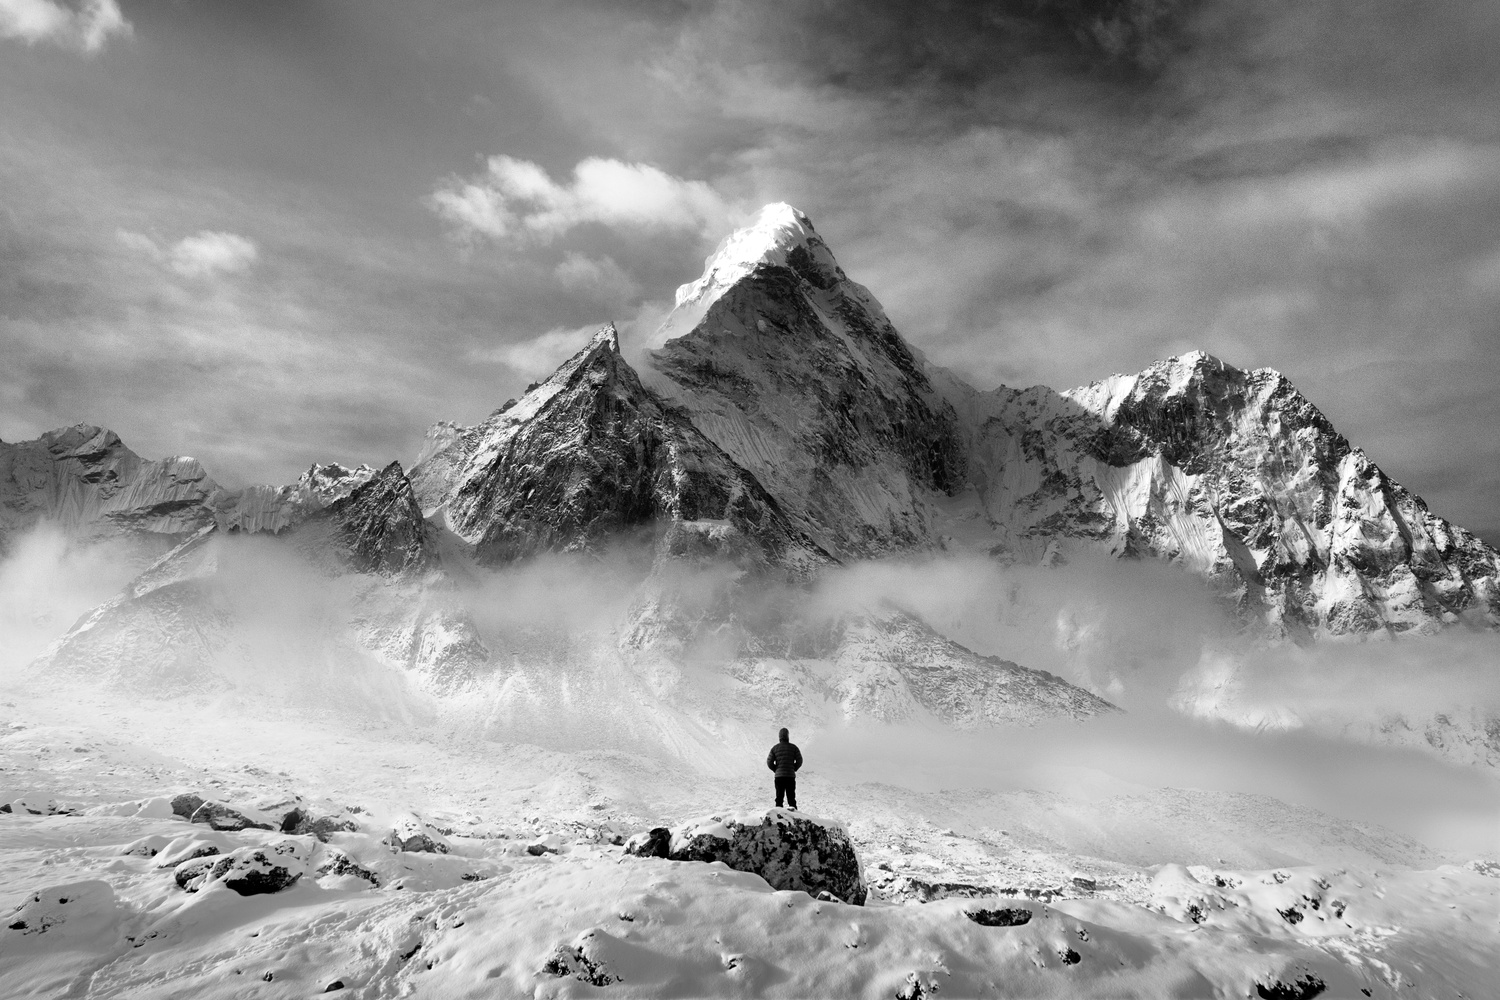 The Mighty Ama Dablam Himalayan Mountains, Nepal by David O Sullivan